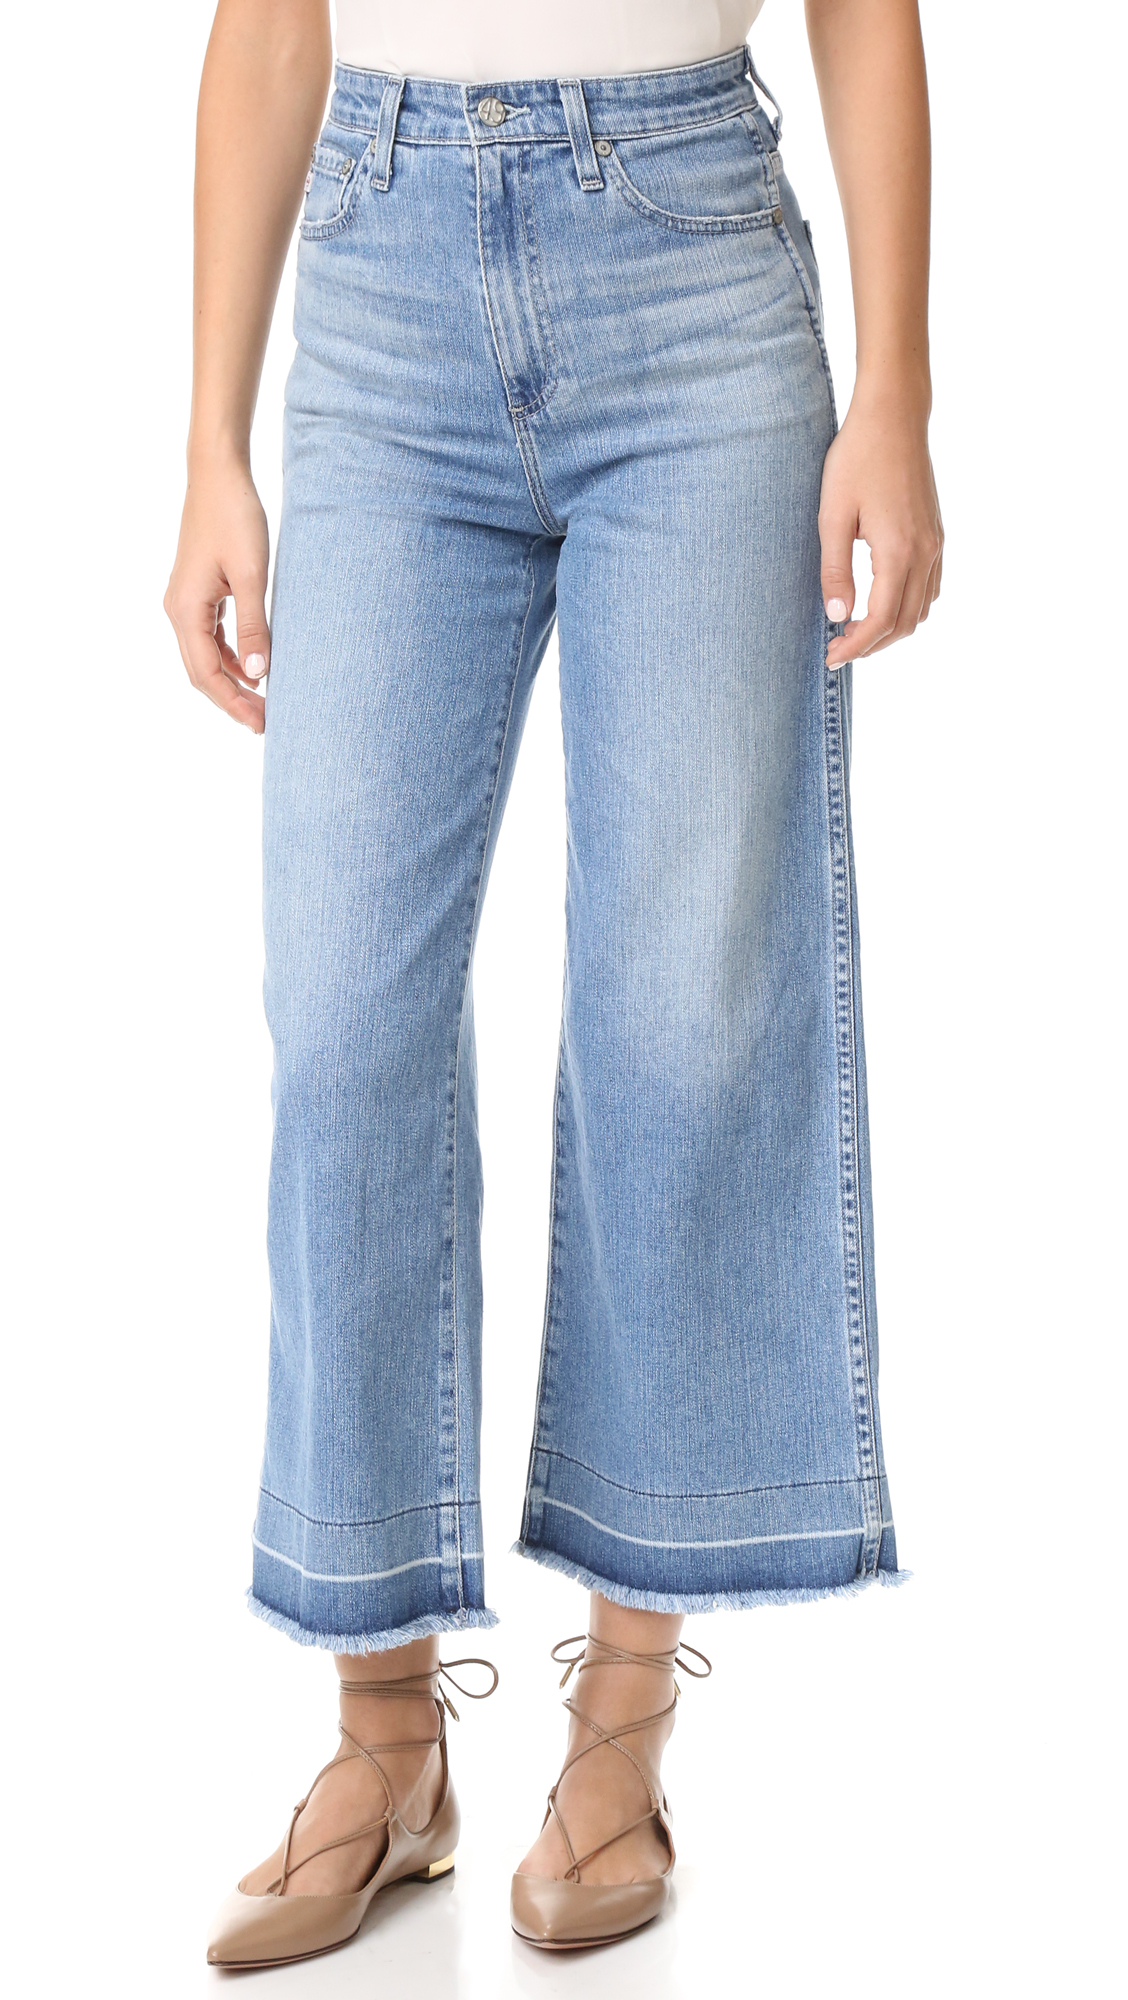 Undone hems lend a deconstructed feel to these high rise AG wide leg jeans. Heavy fading and fraying accentuate the well worn feel. 5 pocket styling. Button closure and zip fly. Fabric: Stretch denim. 98% cotton/2% polyurethane. Wash